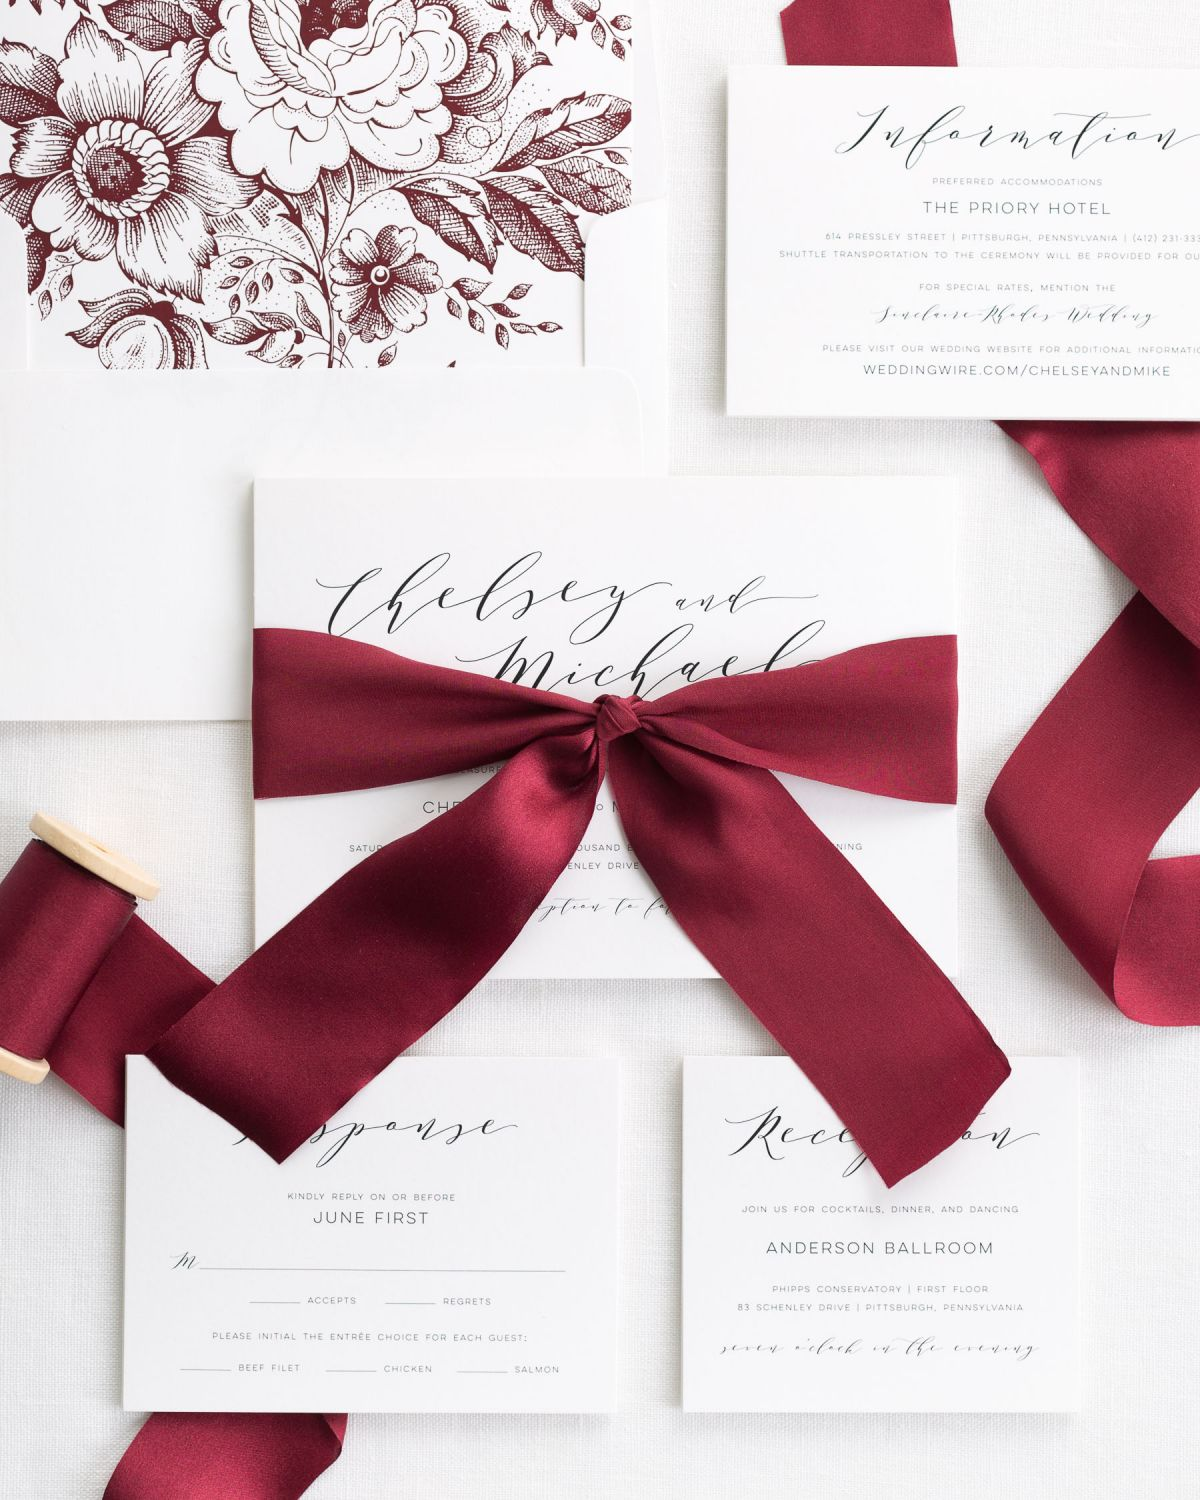 Complete Wedding Invitations Suite with Red Ribbon and Enclosures